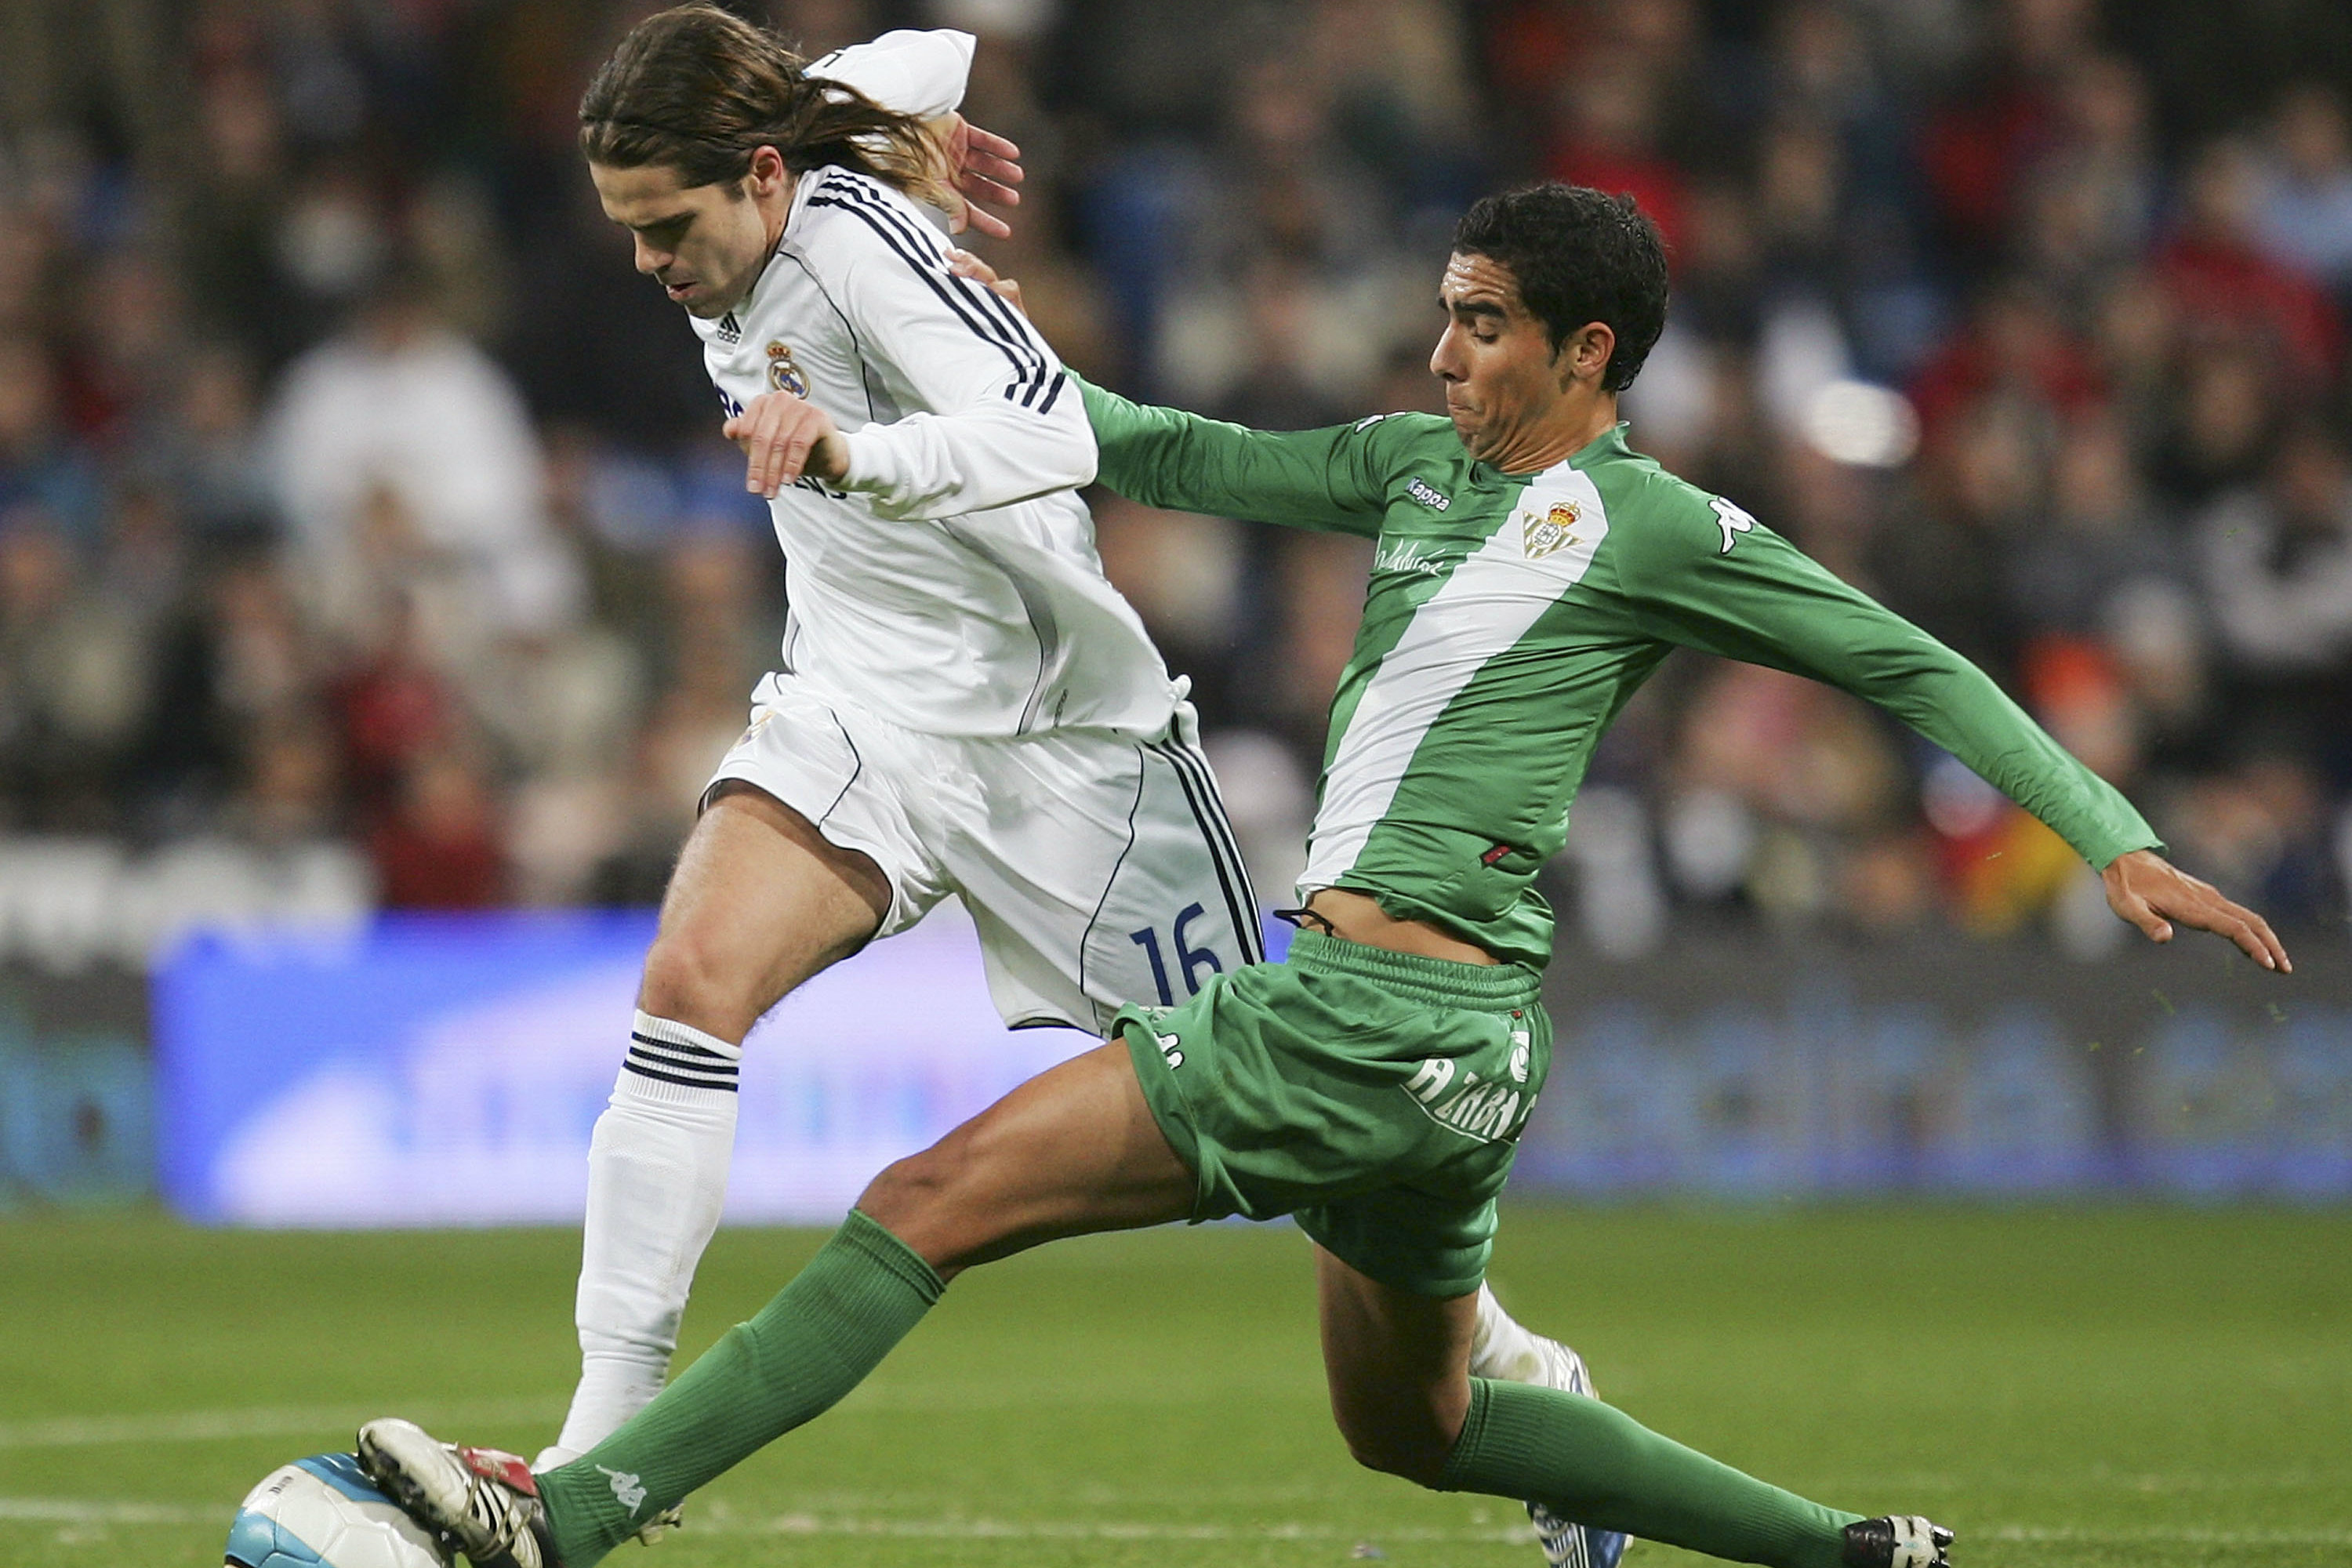 Juande in action against Real Madrid.